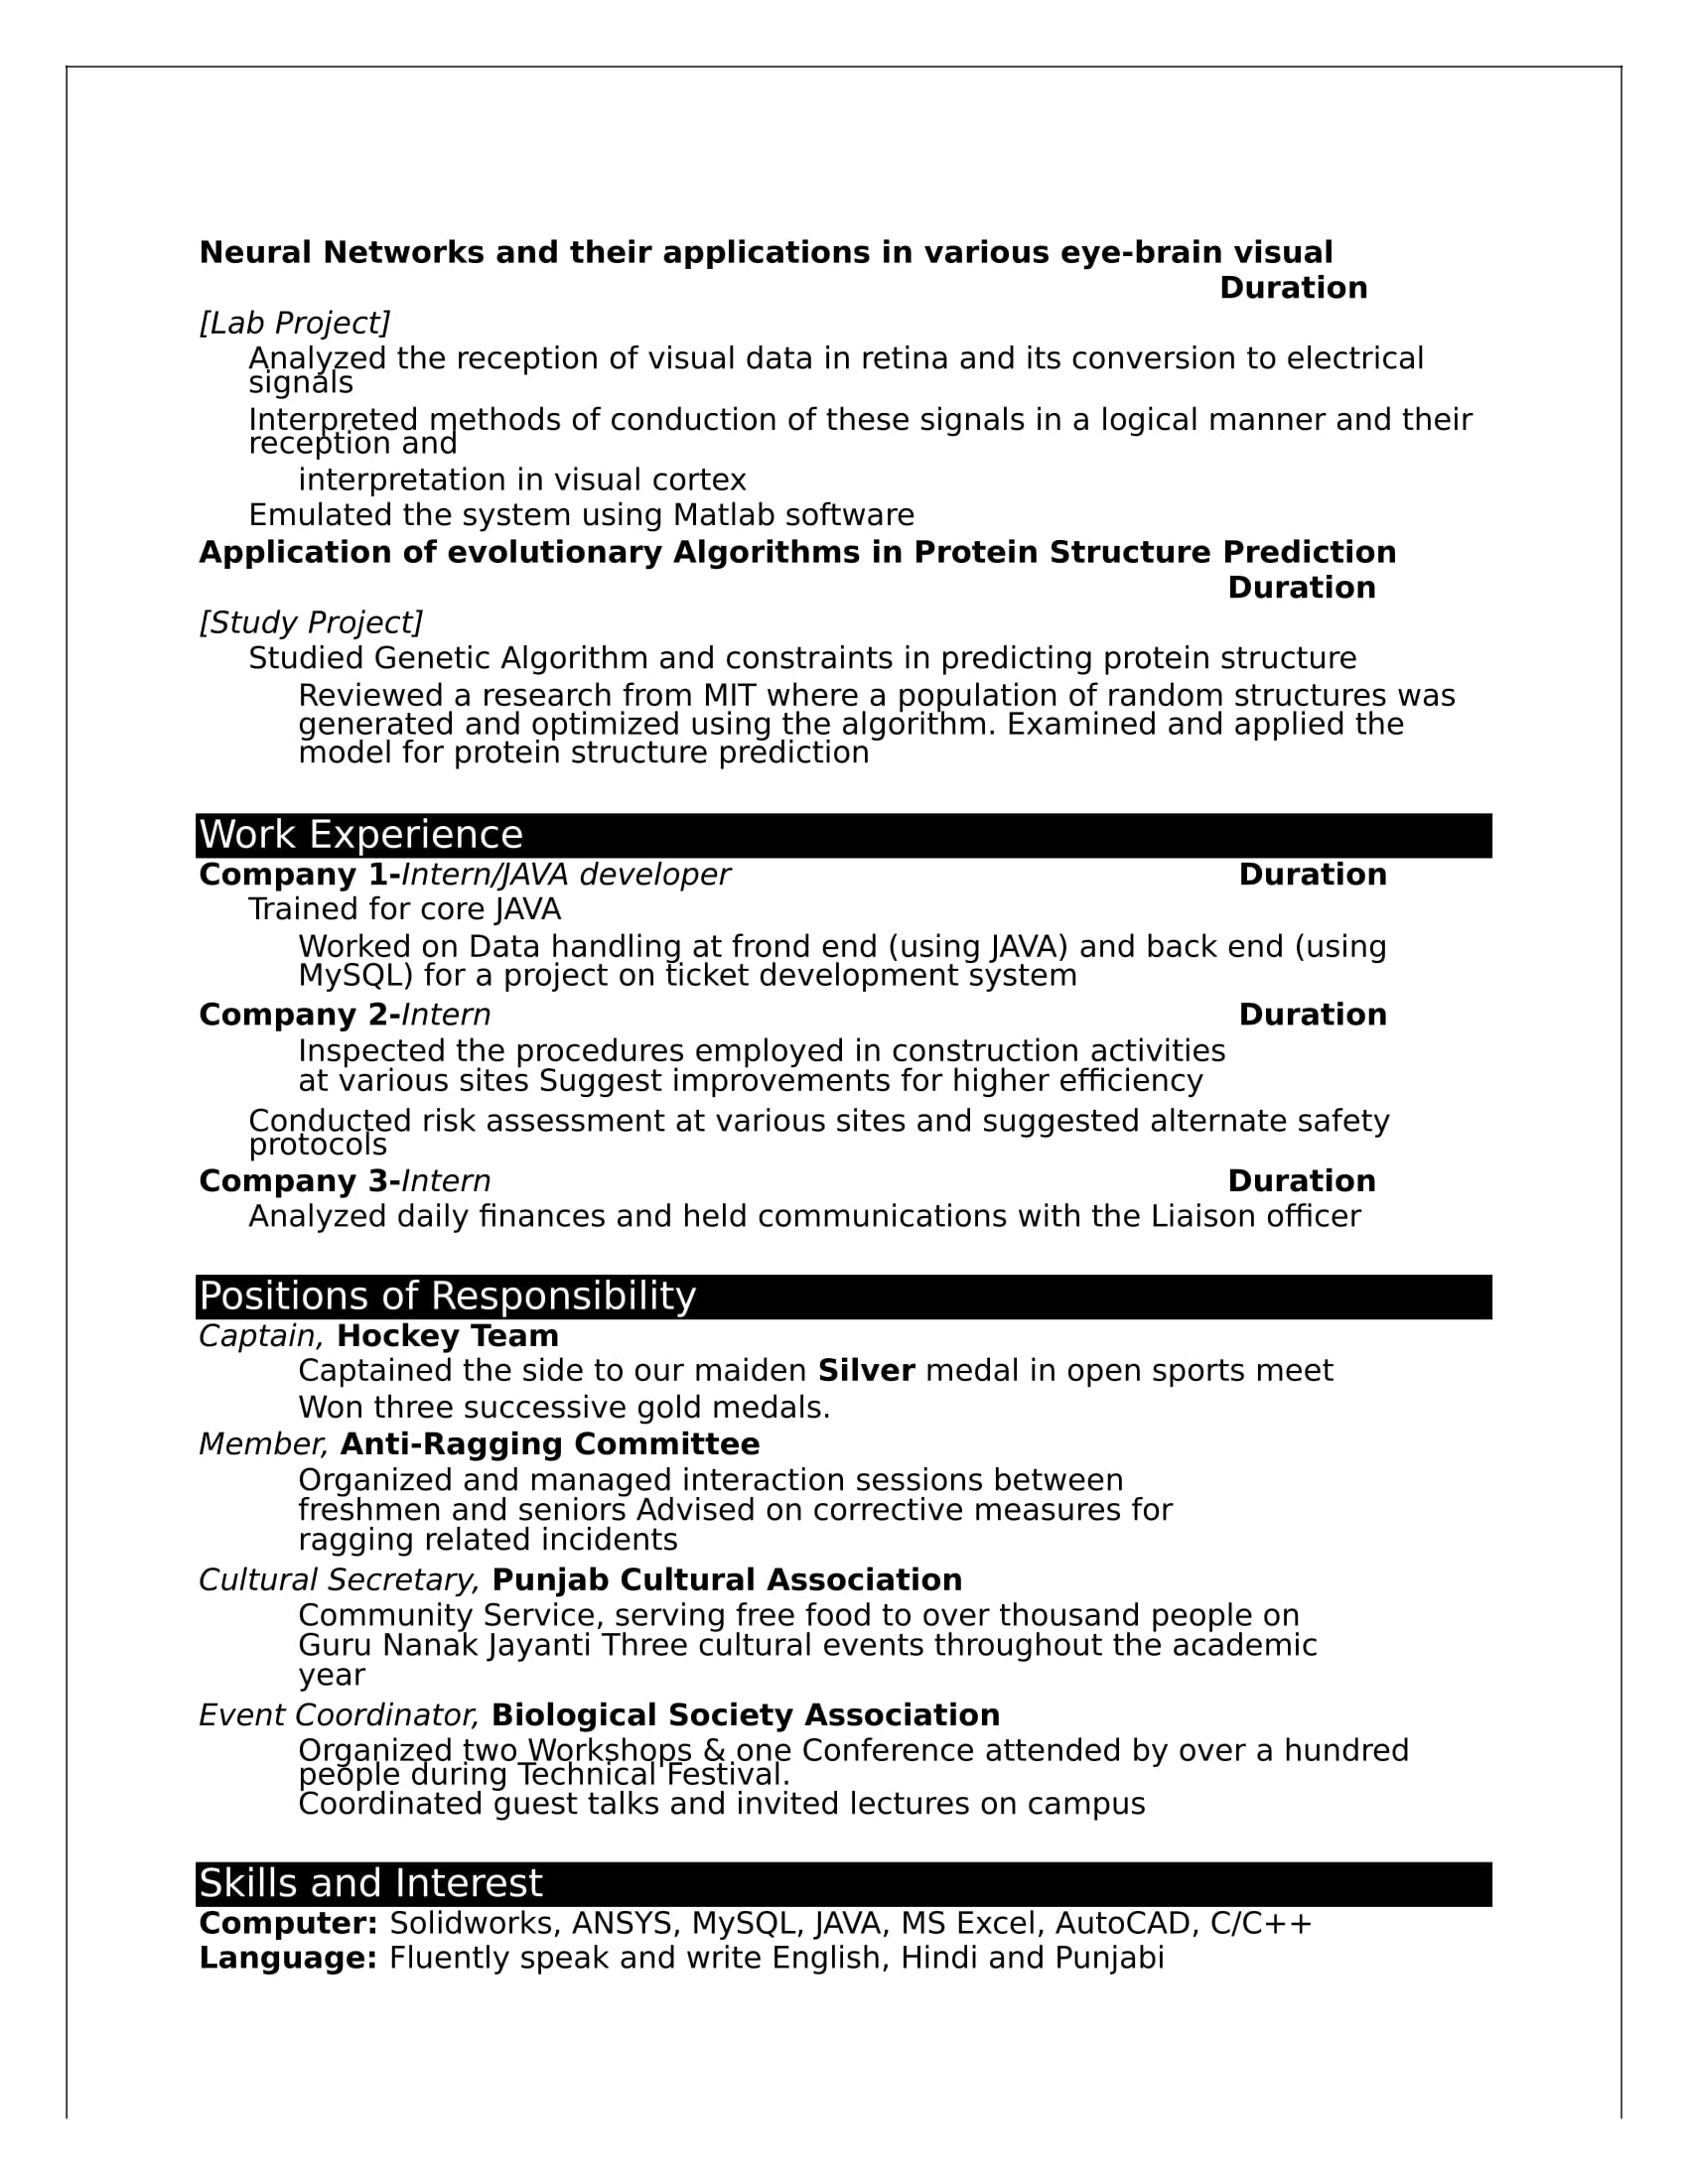 Internship Certificate For Civil Engineering Students Pdf